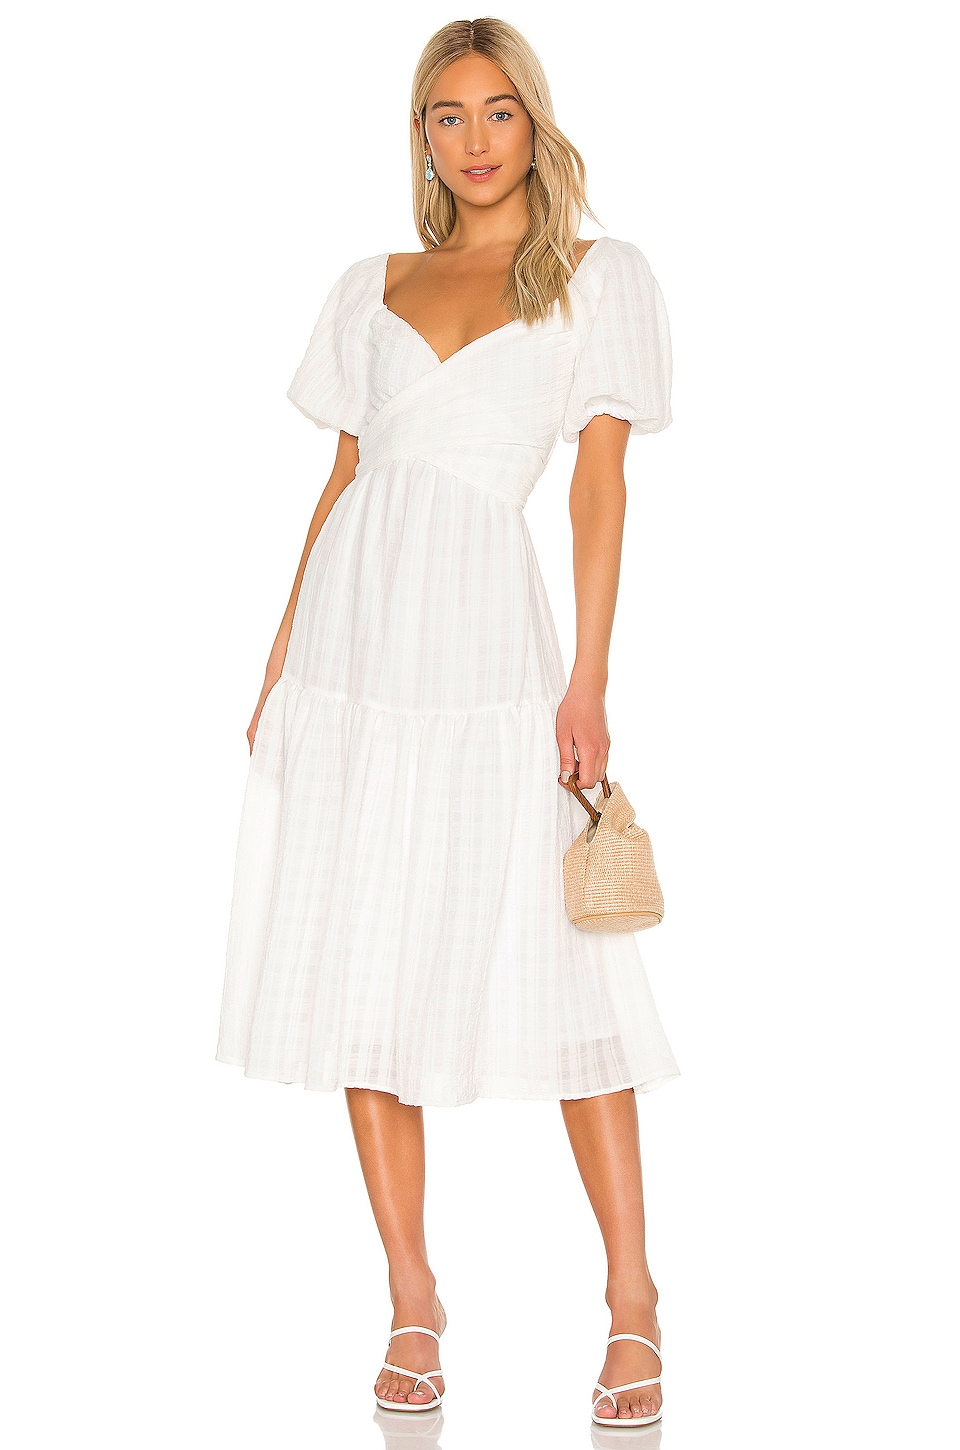 Sonnet Dress             ASTR the Label                                                                                                       CA$ 199.96 18